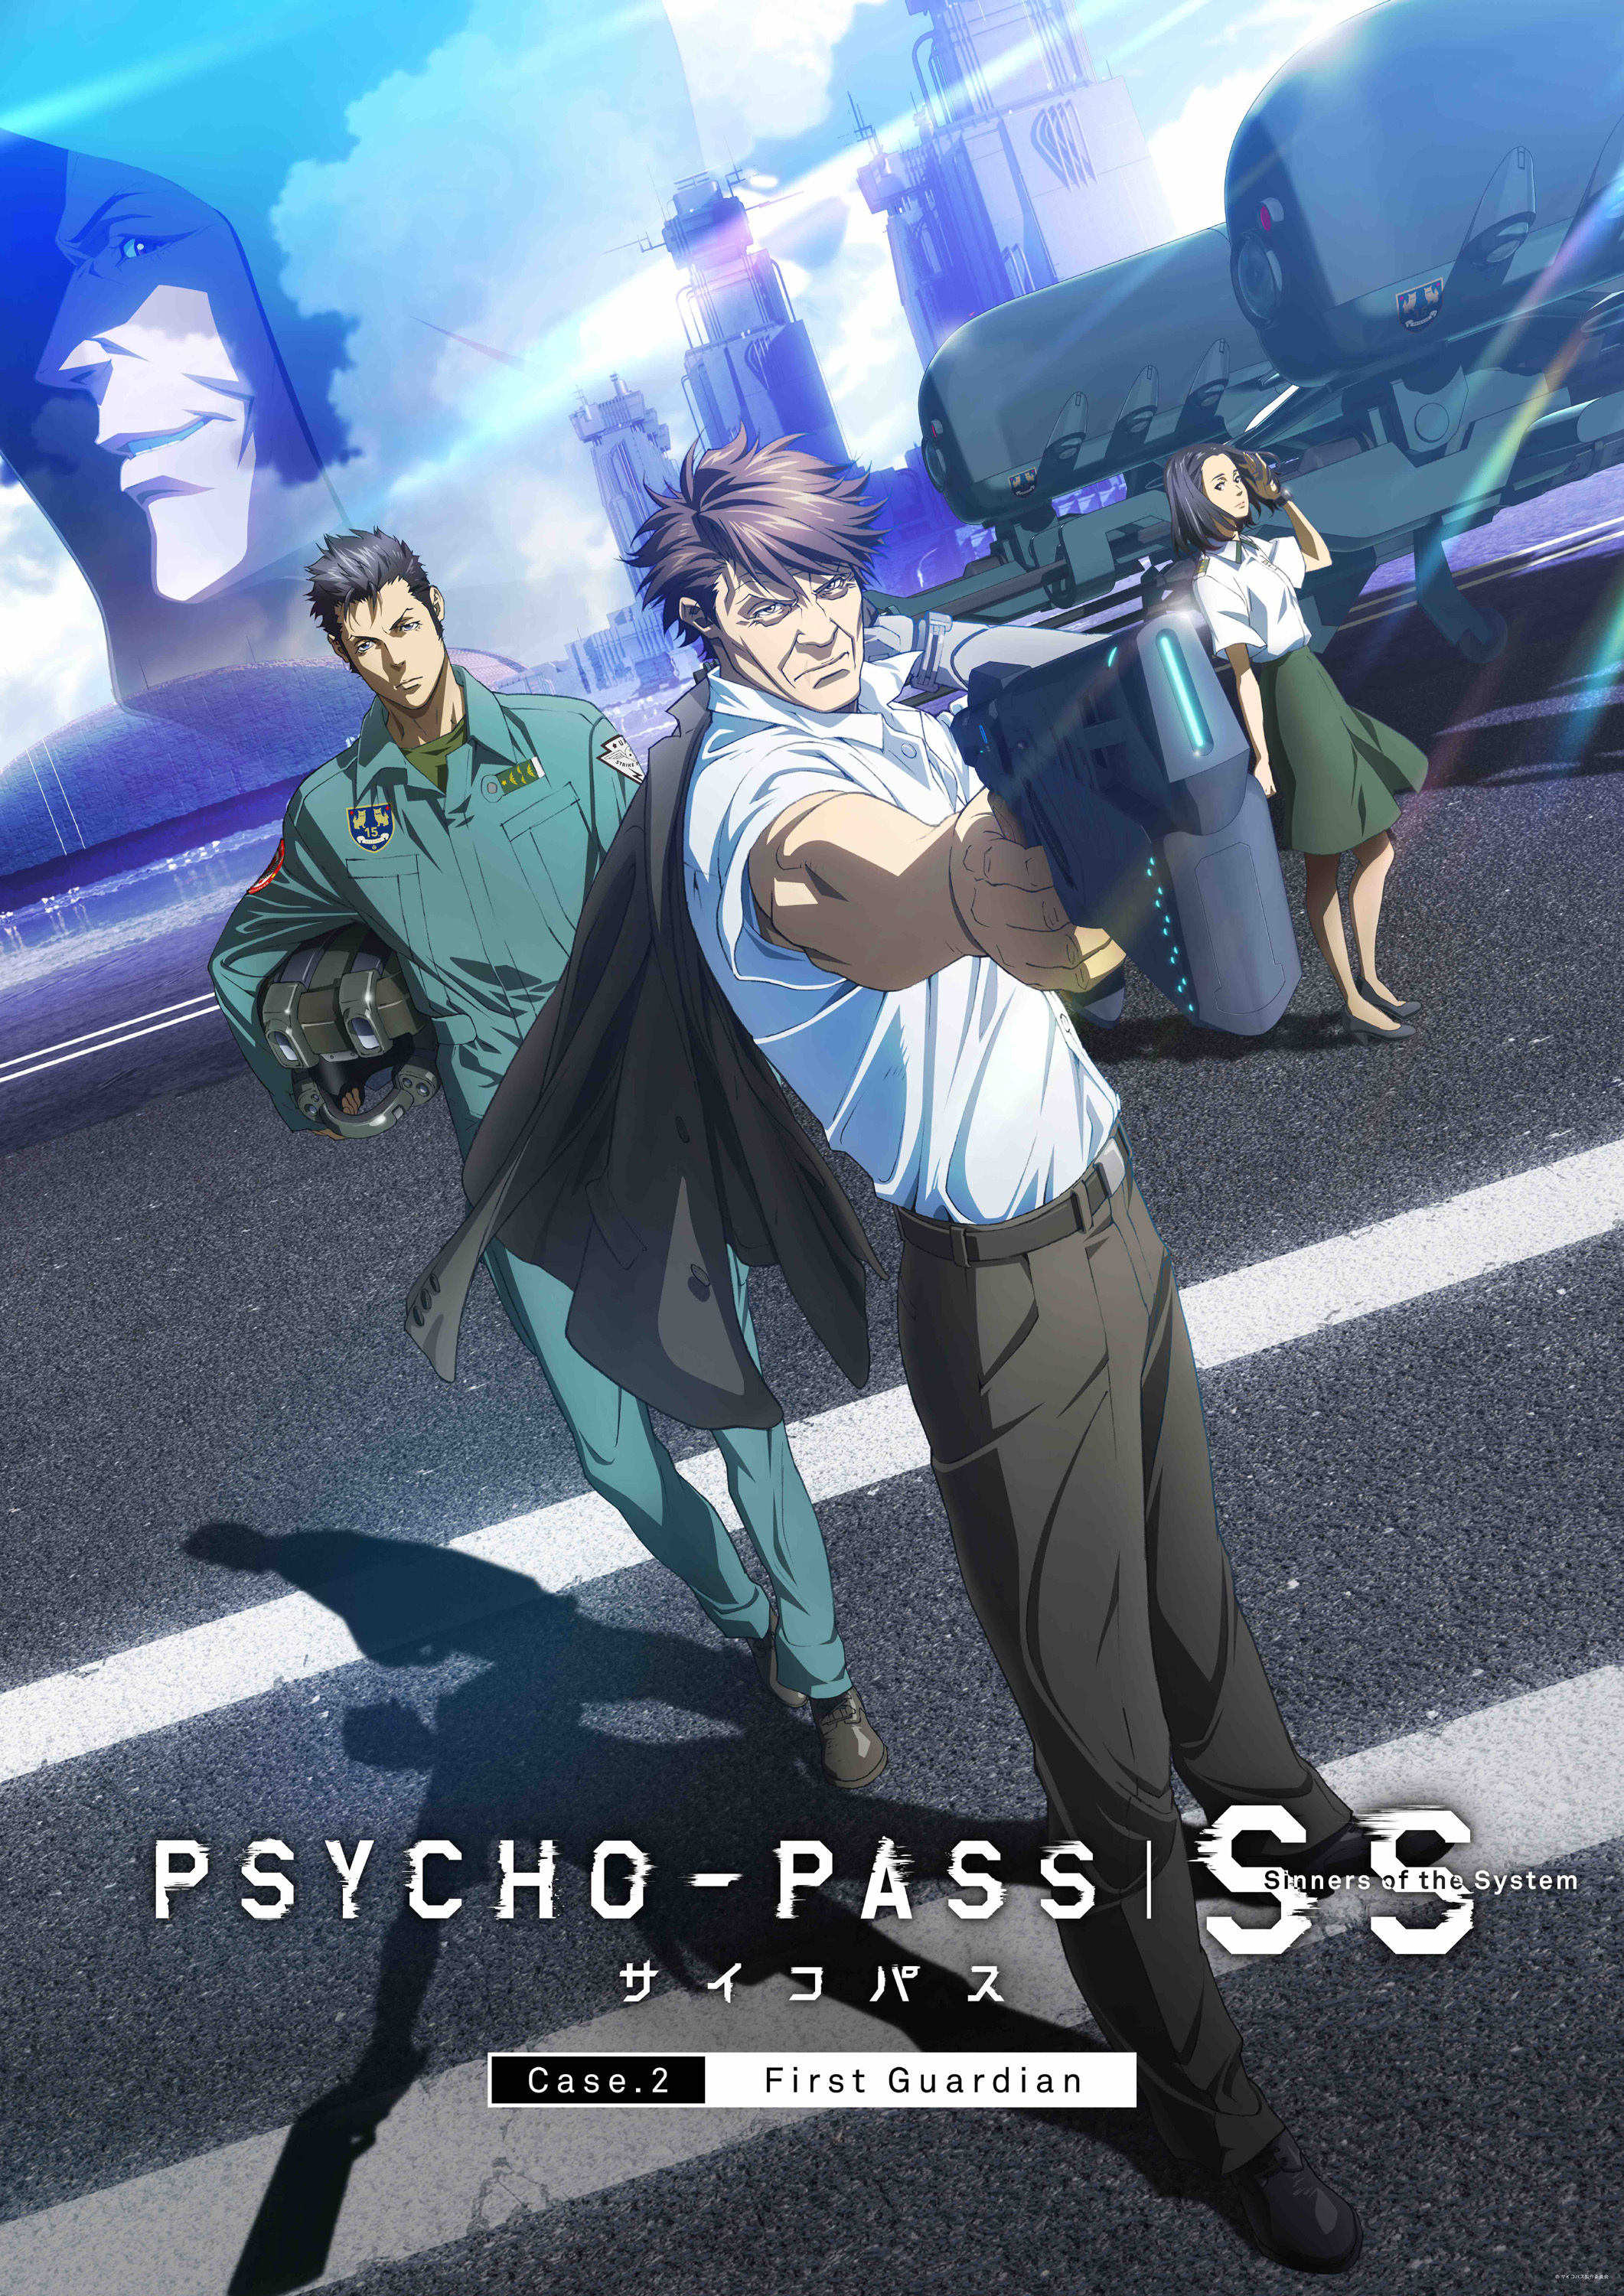 『PSYCHO-PASS サイコパスSinners of the System Case.2 First Guardian』 (c)サイコパス製作委員会